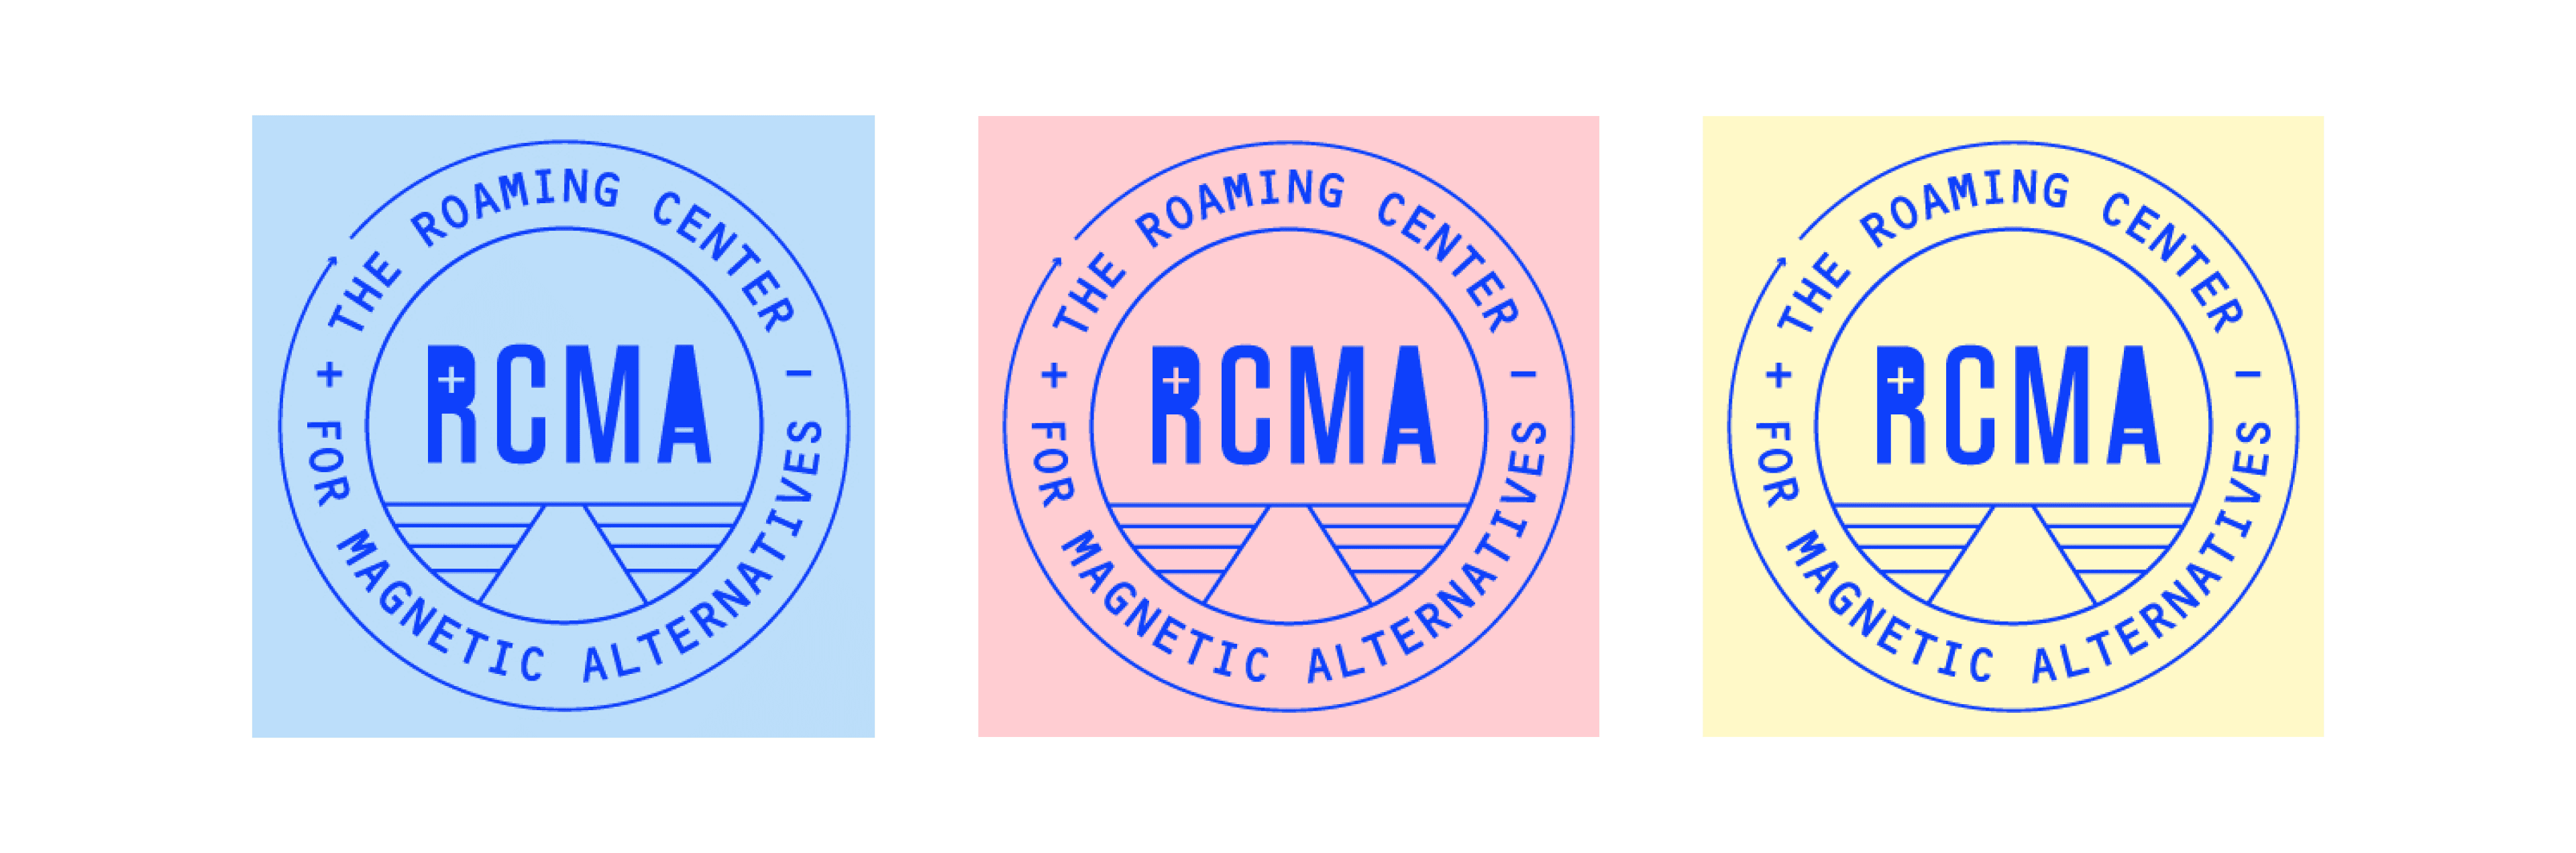 RCMA-Circular-Lockups-Color-BG